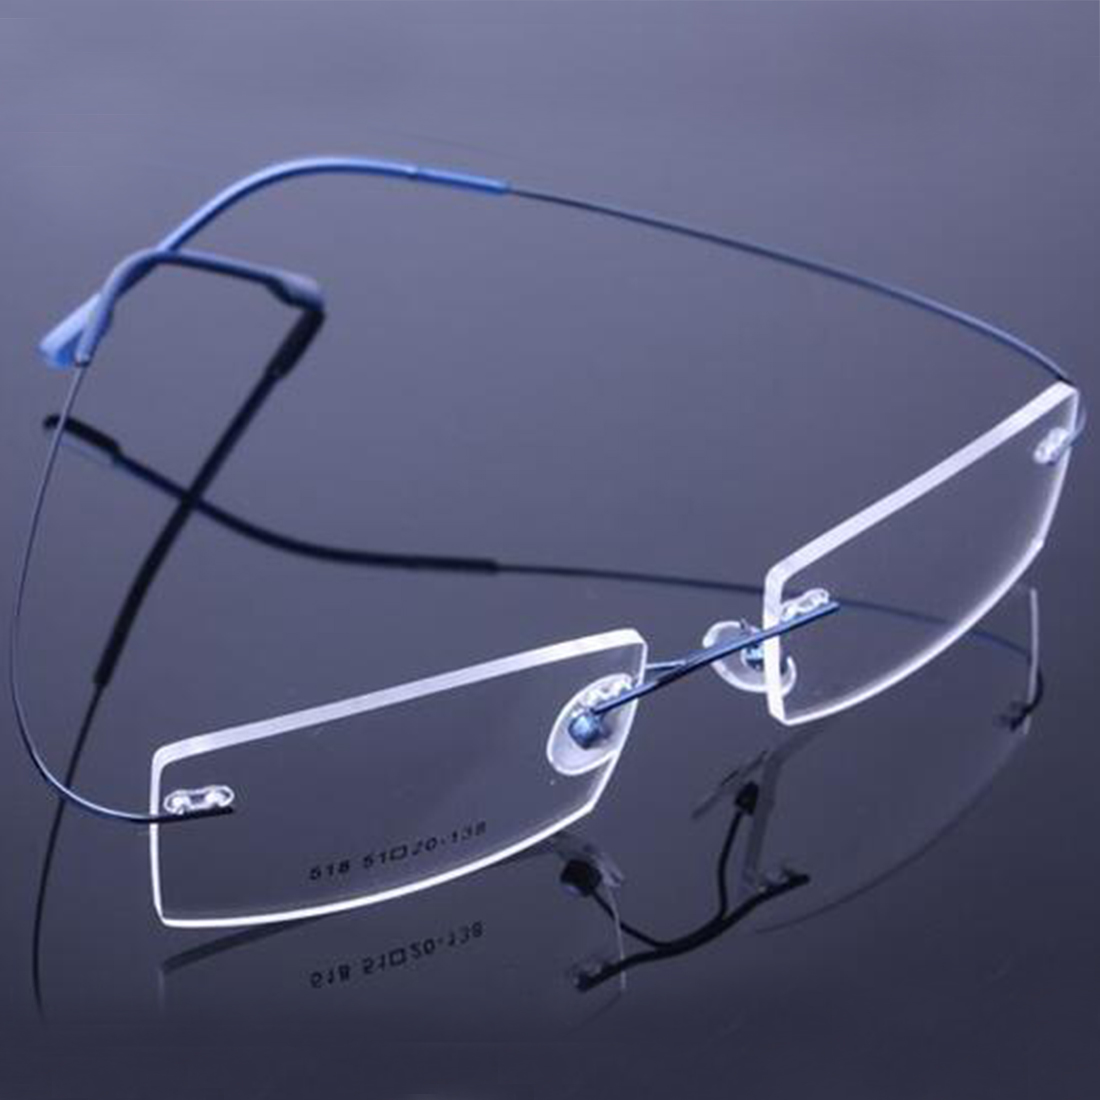 Rimless Titanium Eyeglasses Frames Women Men Flexible Optical Frame Prescription Spectacle Frameless Glasses Eye Glasses